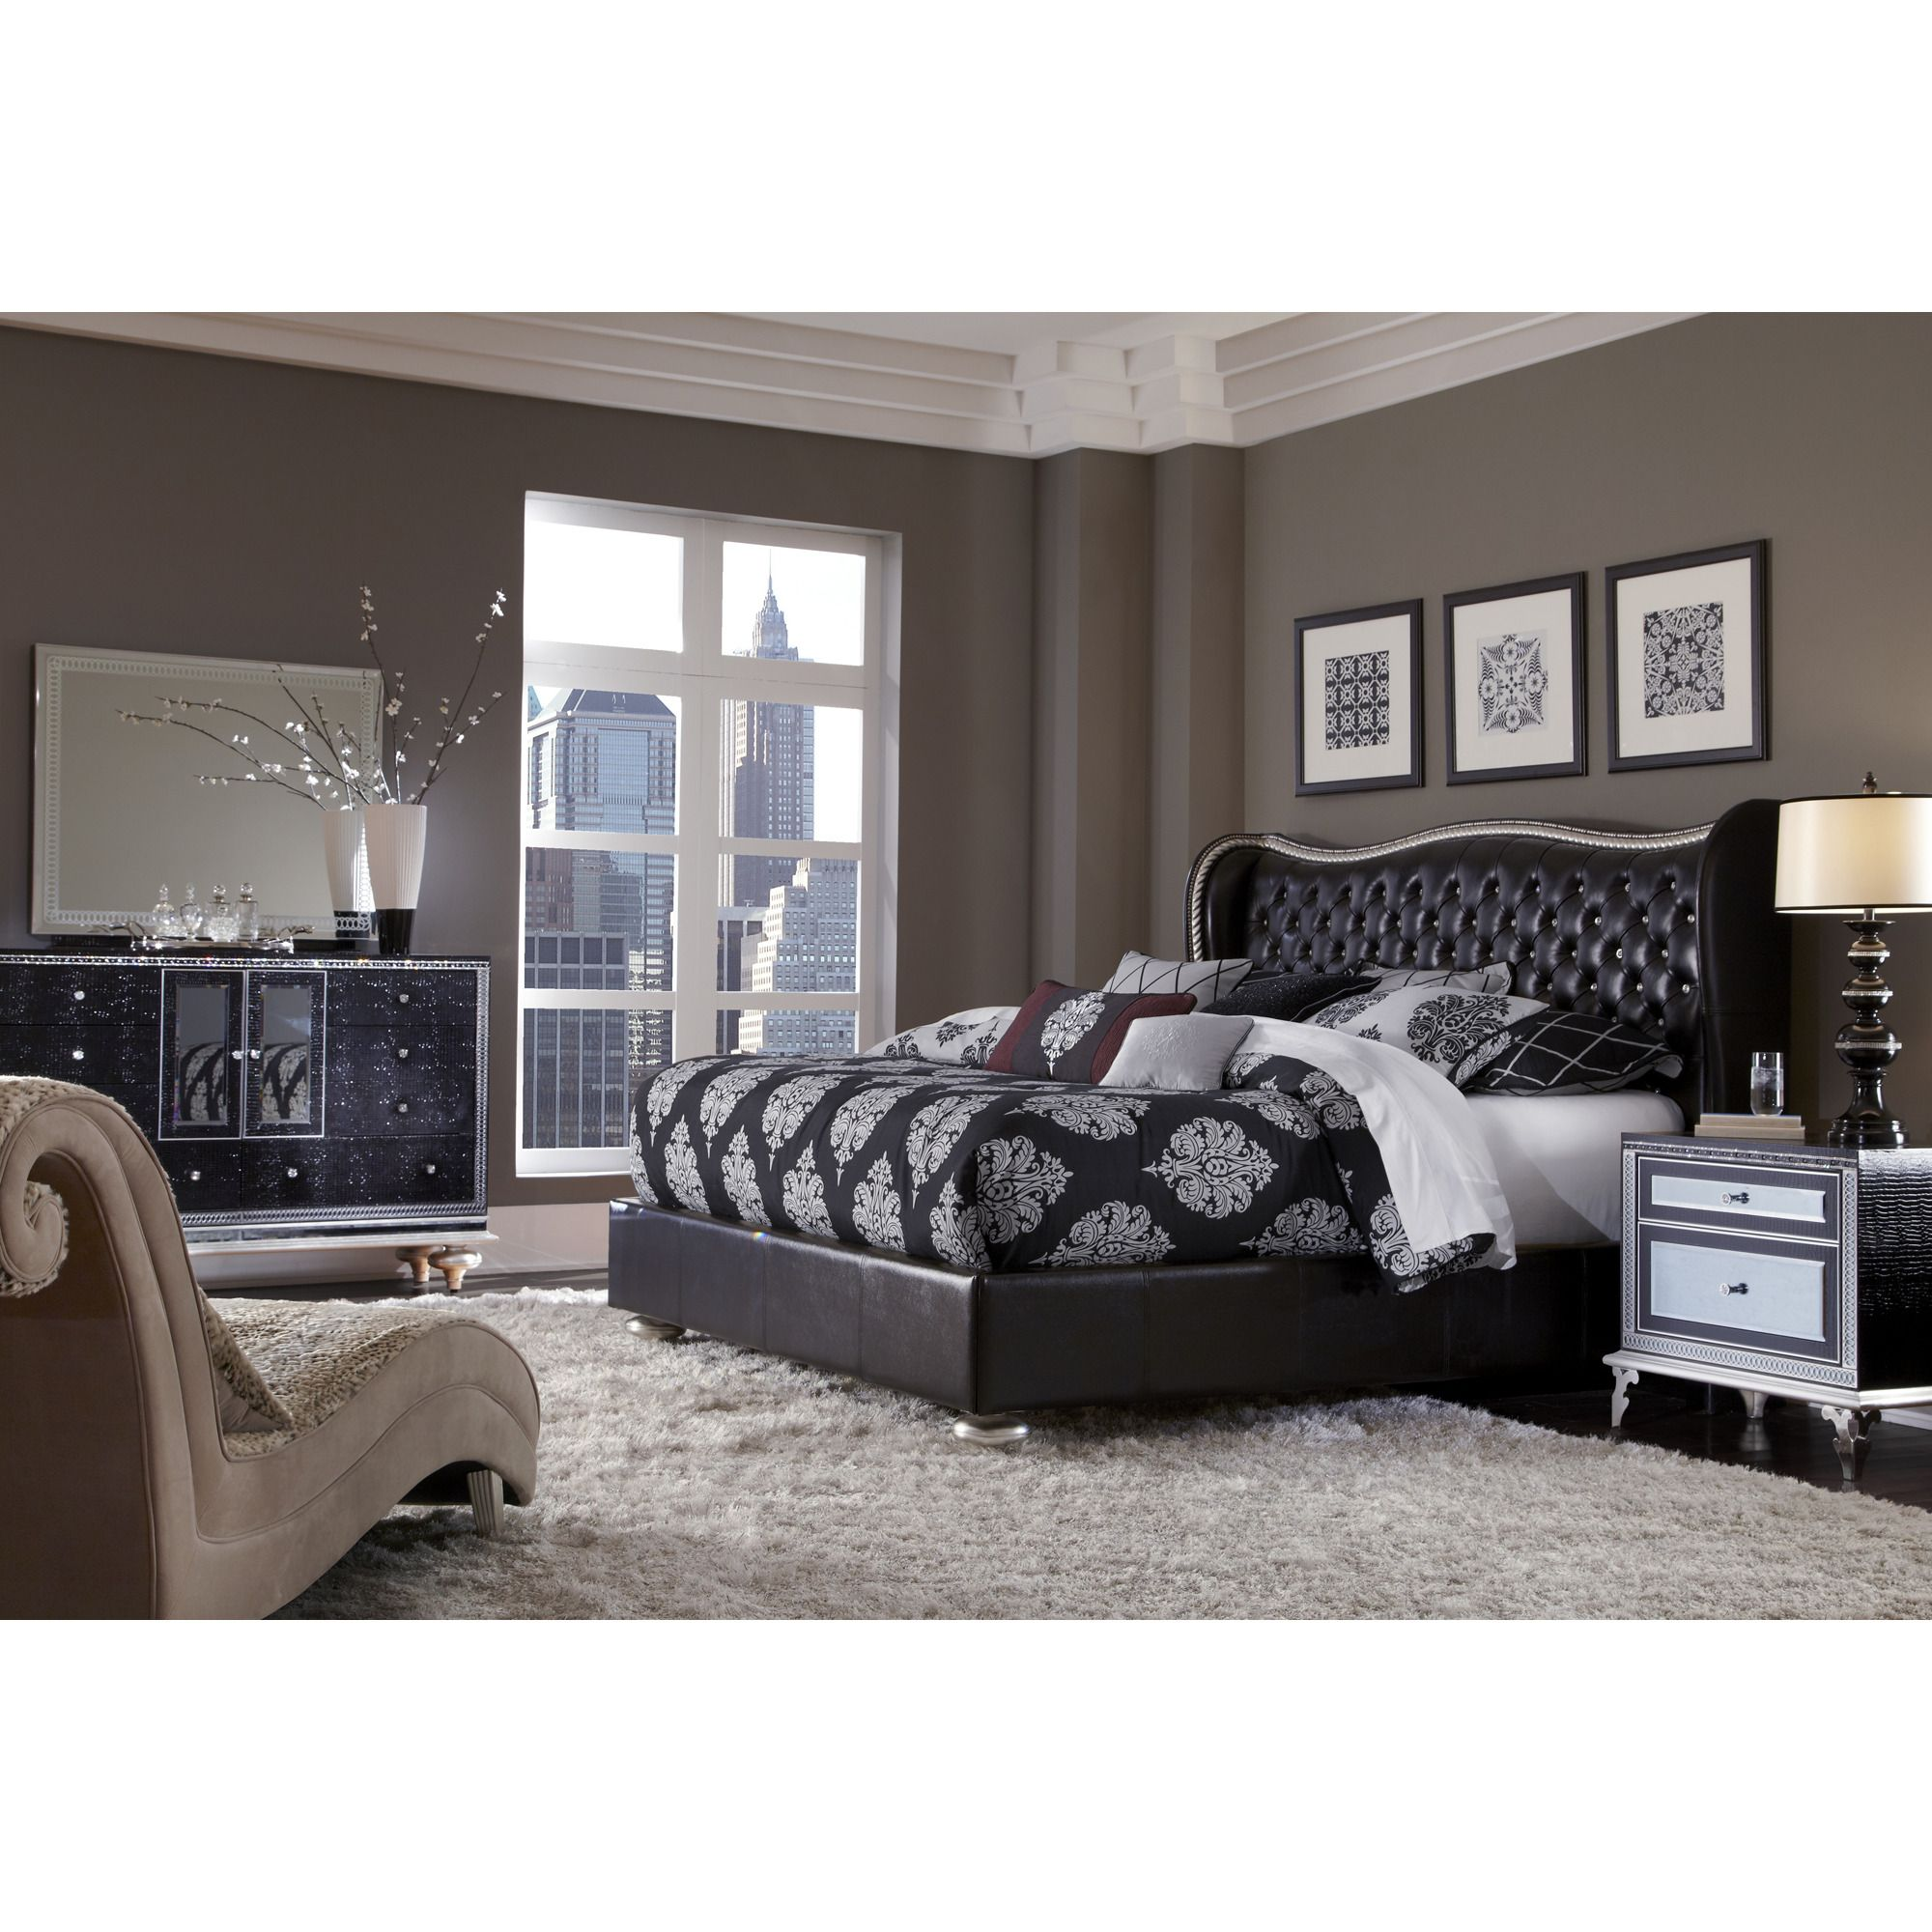 Hollywood Swank Upholstered Bedroom Set By AICO